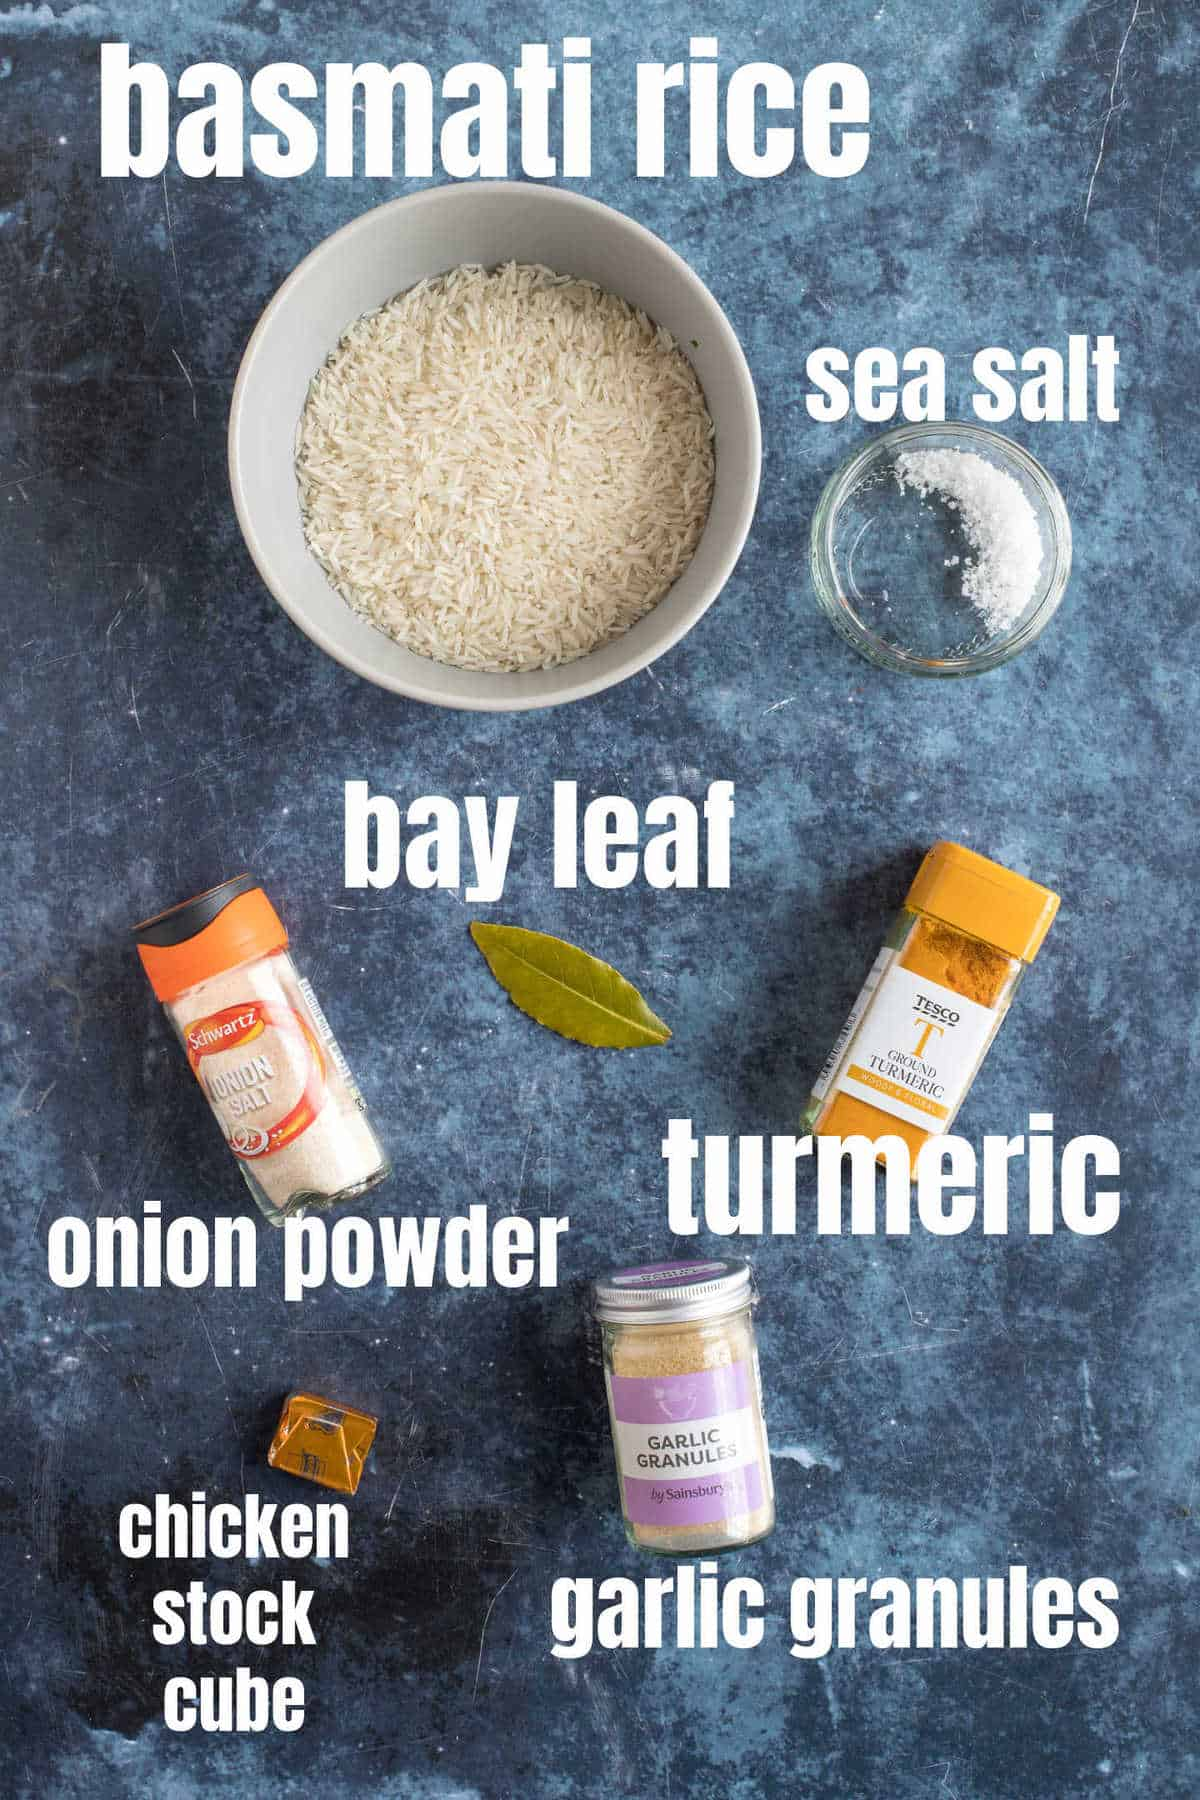 Ingredients for turmeric rice.